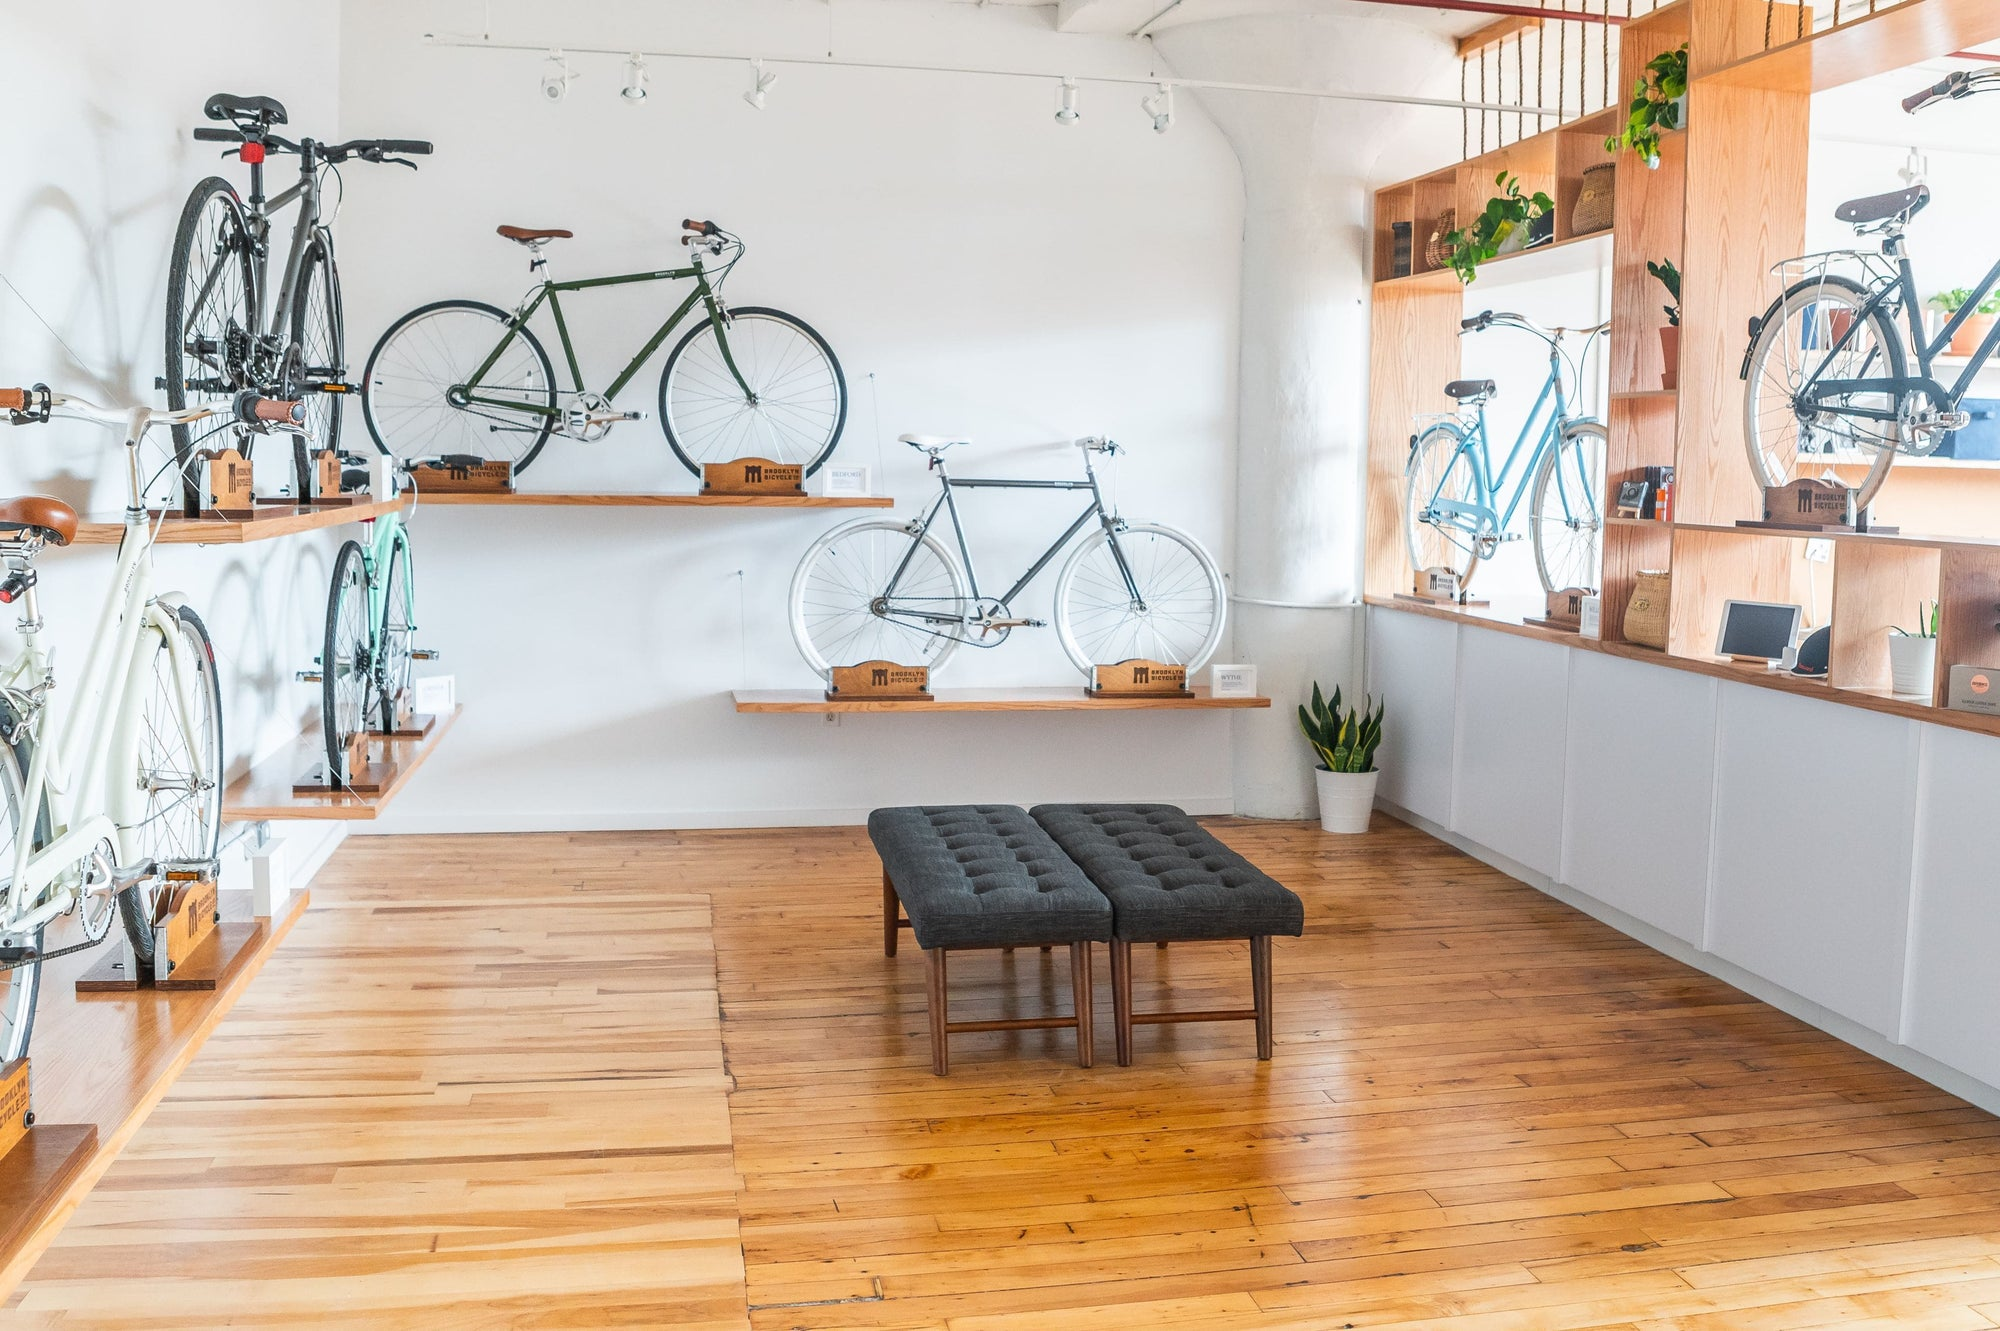 The Brooklyn Bicycle Co. Showroom